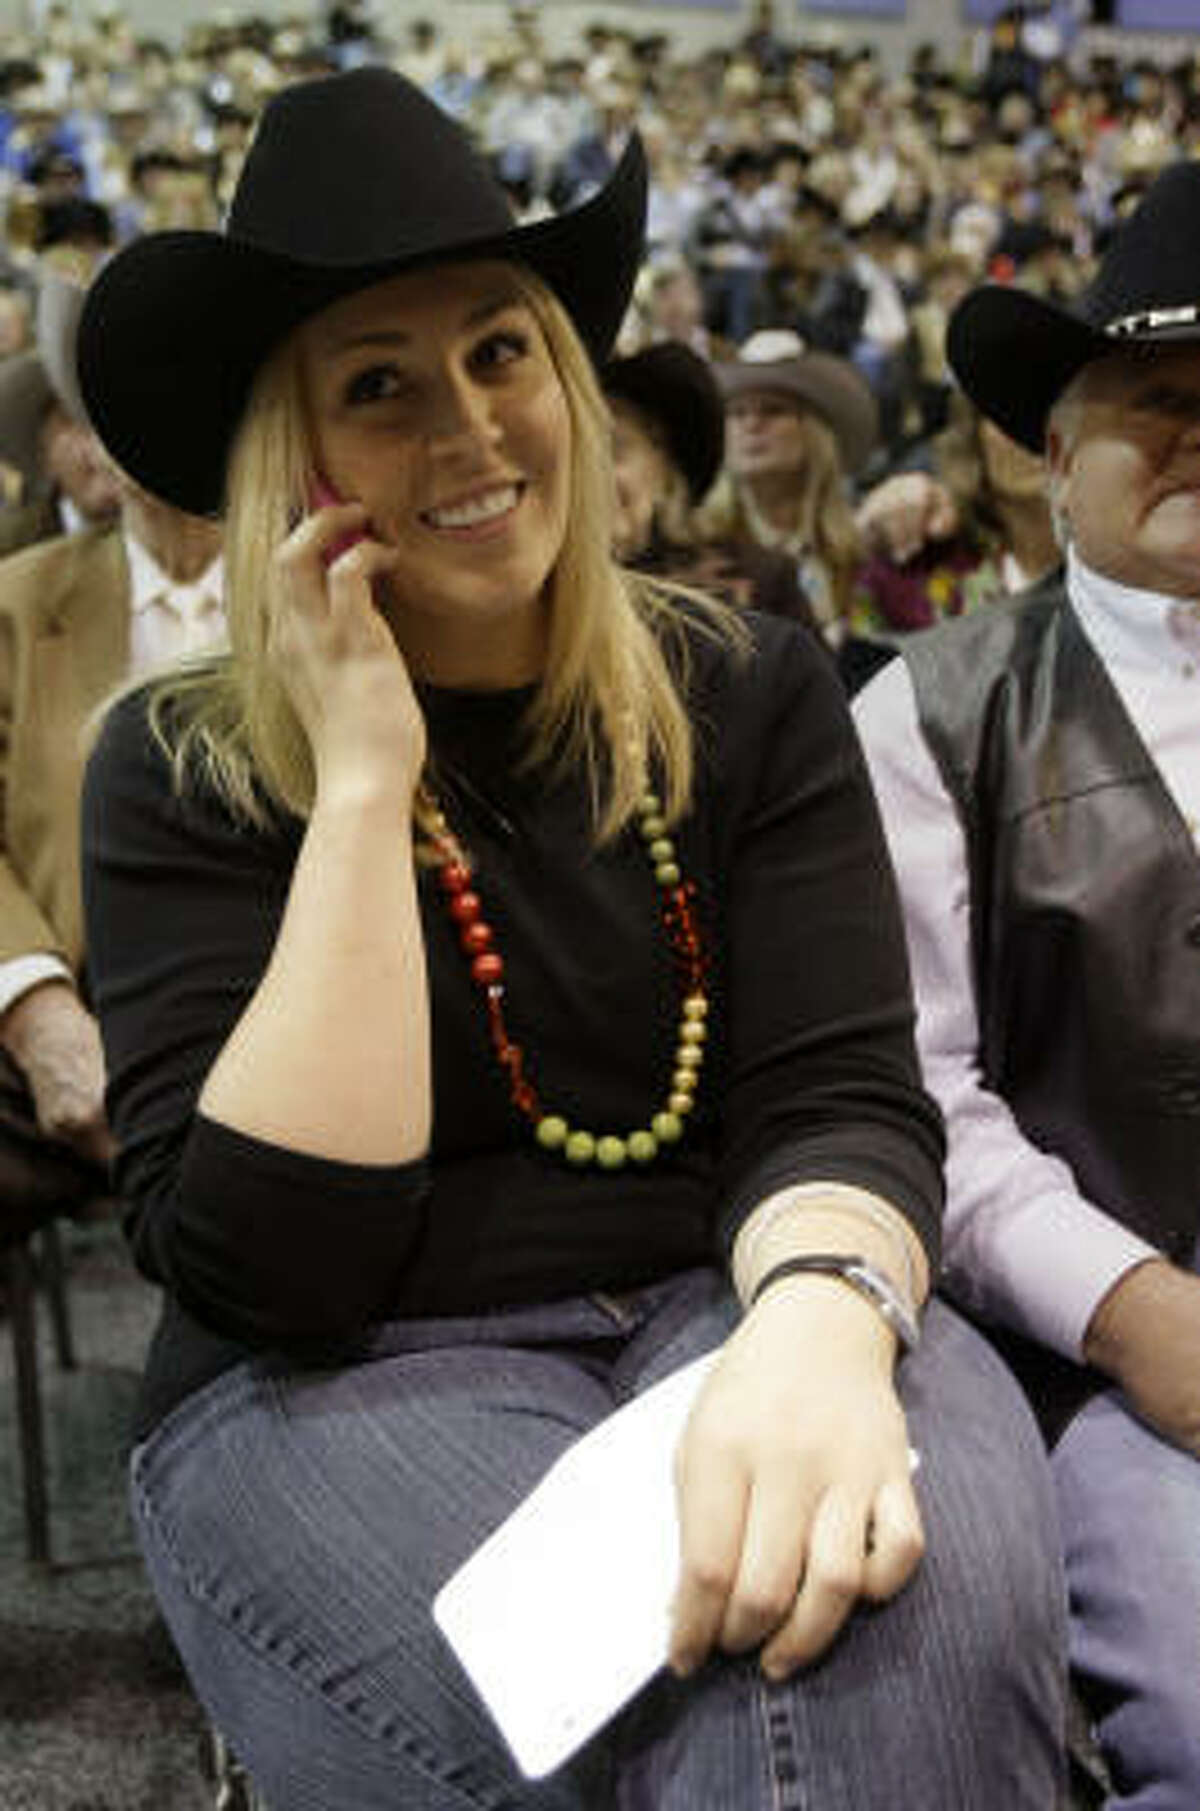 Laura McIngvale talks on the phone to her dad, Jim McIngvale, owner of Gallery Furniture, as she bids on the Grand Champion during the Junior Market Steer Auction at Reliant Arena Sales Pavilion at the Houston Livestock Show and Rodeo on Saturday, March 14, 2009, in Houston.